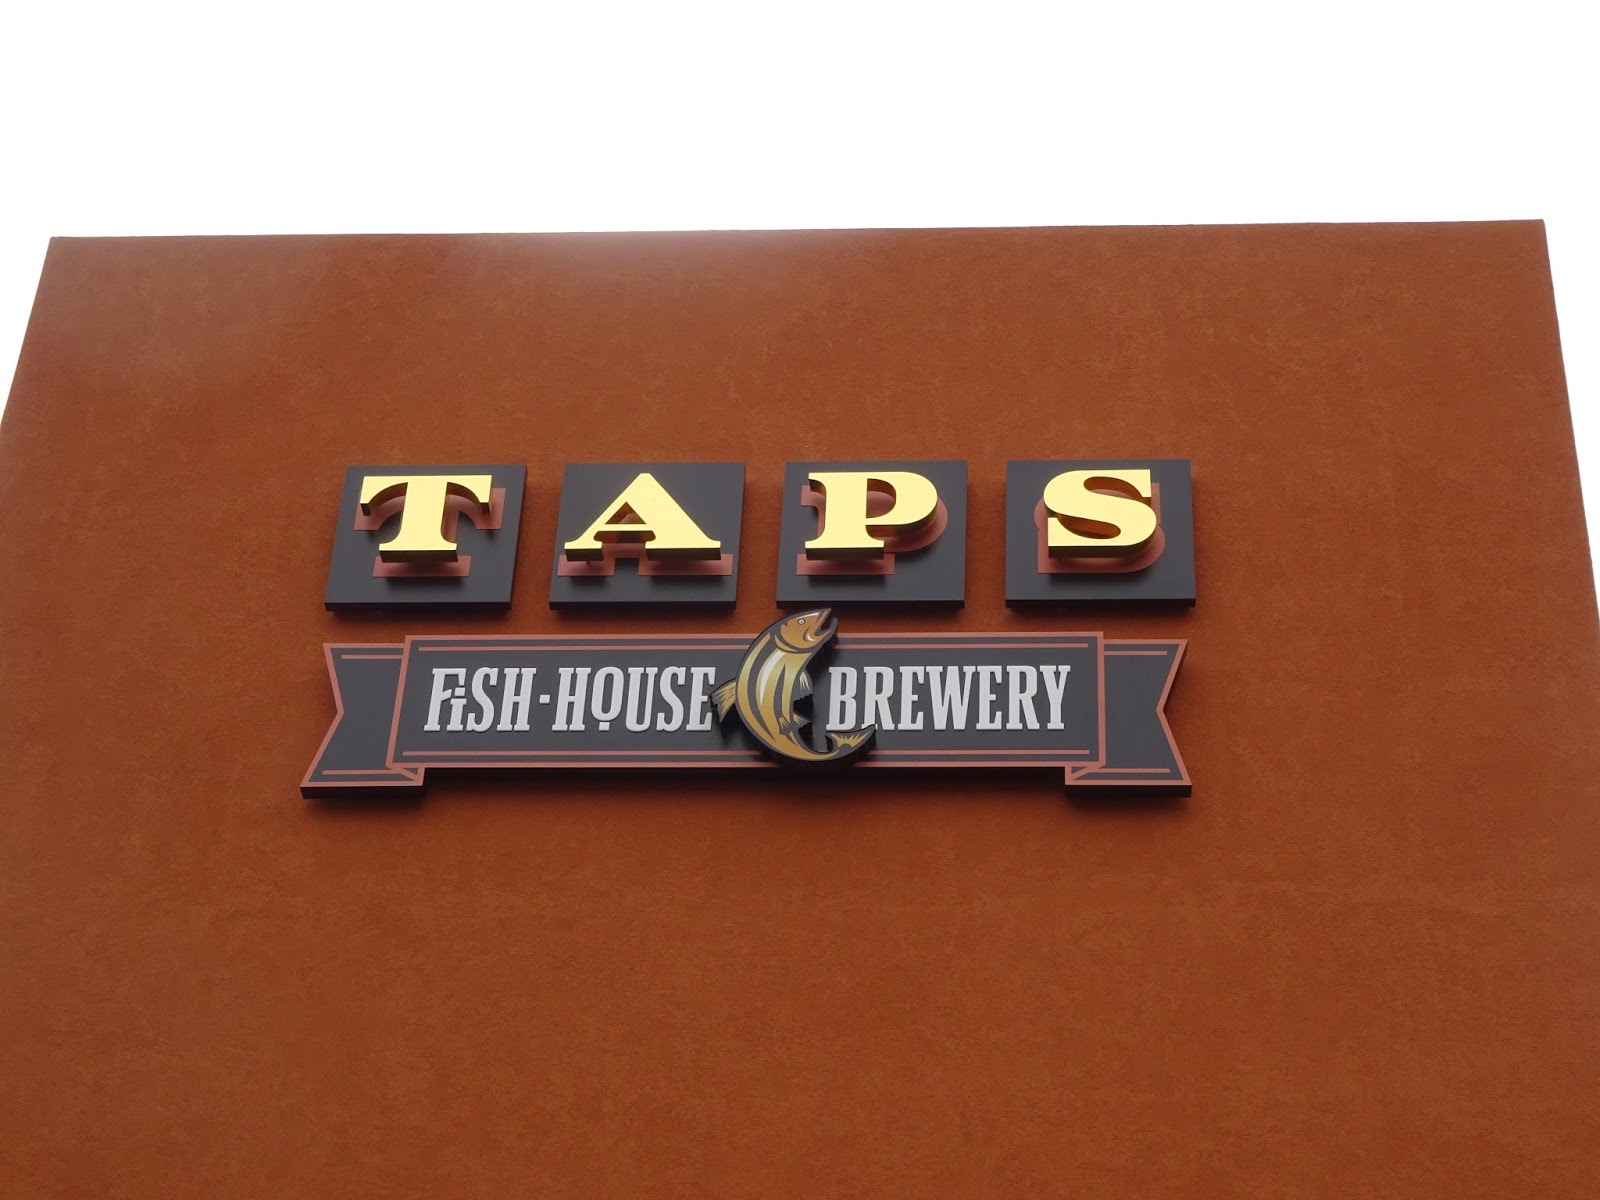 Eating my way through oc taps opens in irvine for Taps fish house irvine